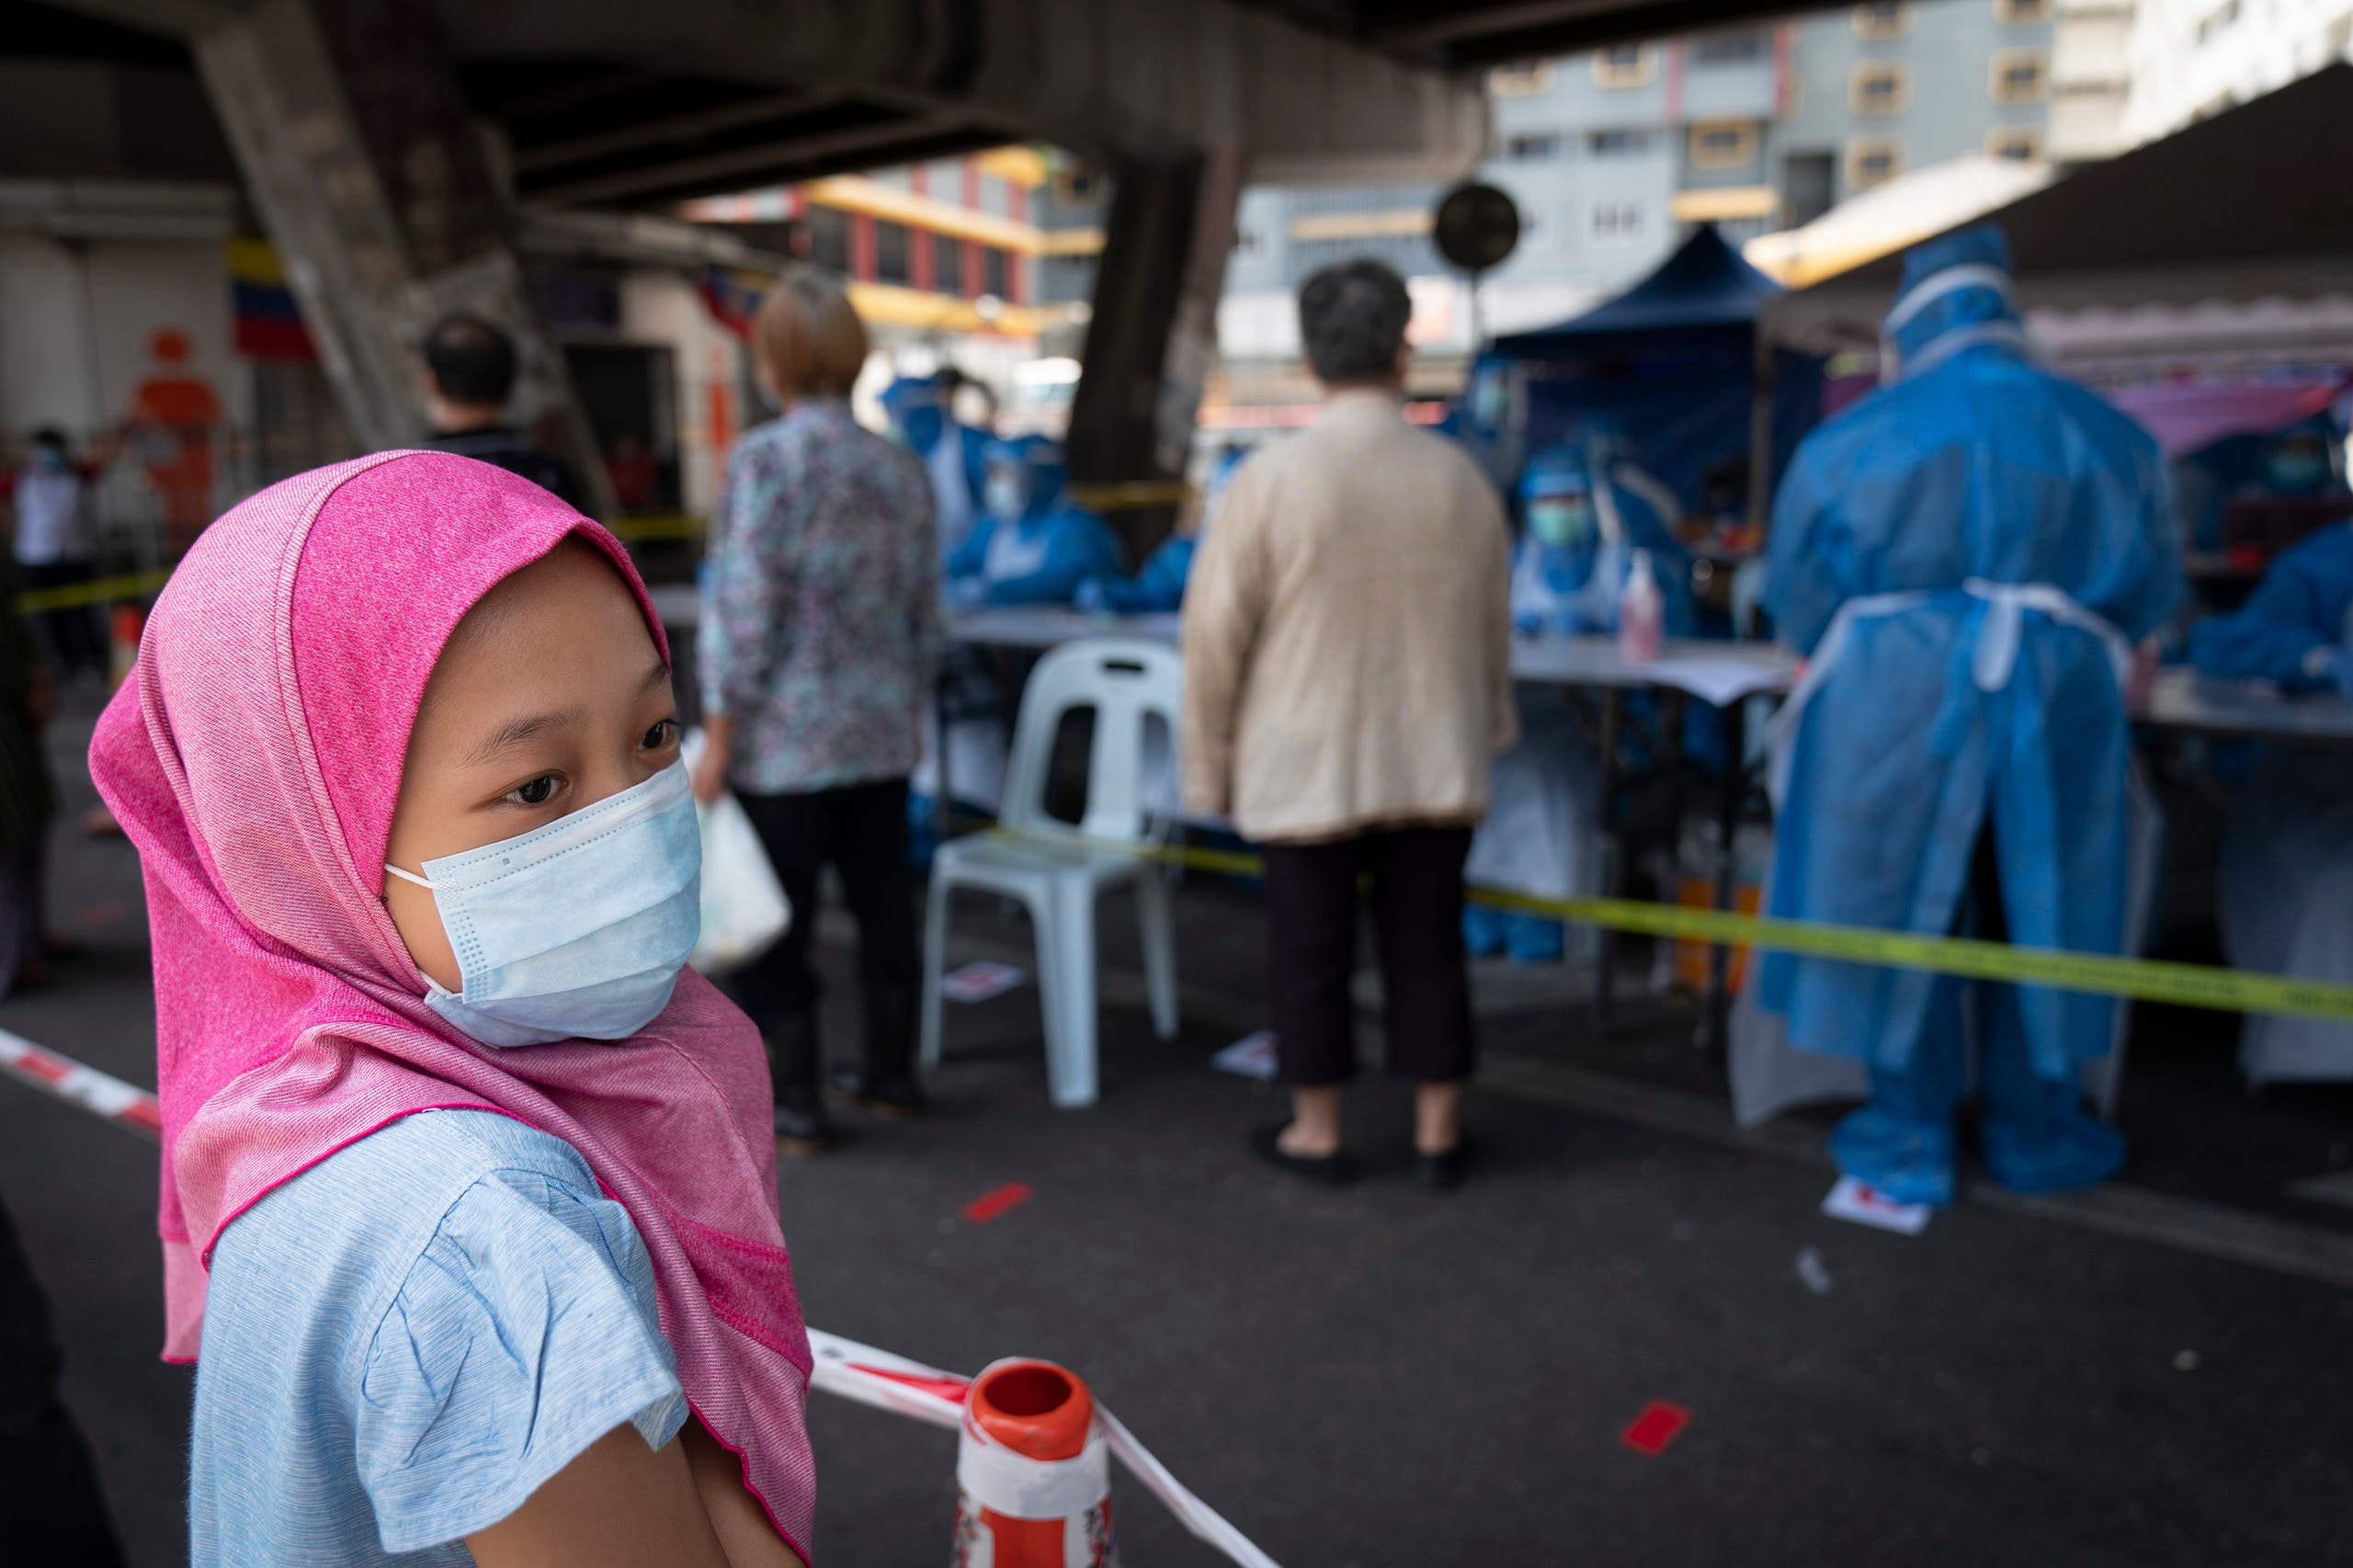 A Muslim girl wearing a face mask waits for new coronavirus testing at a wet market in Kuala Lumpur, Malaysia May 5, 2020. (AP)